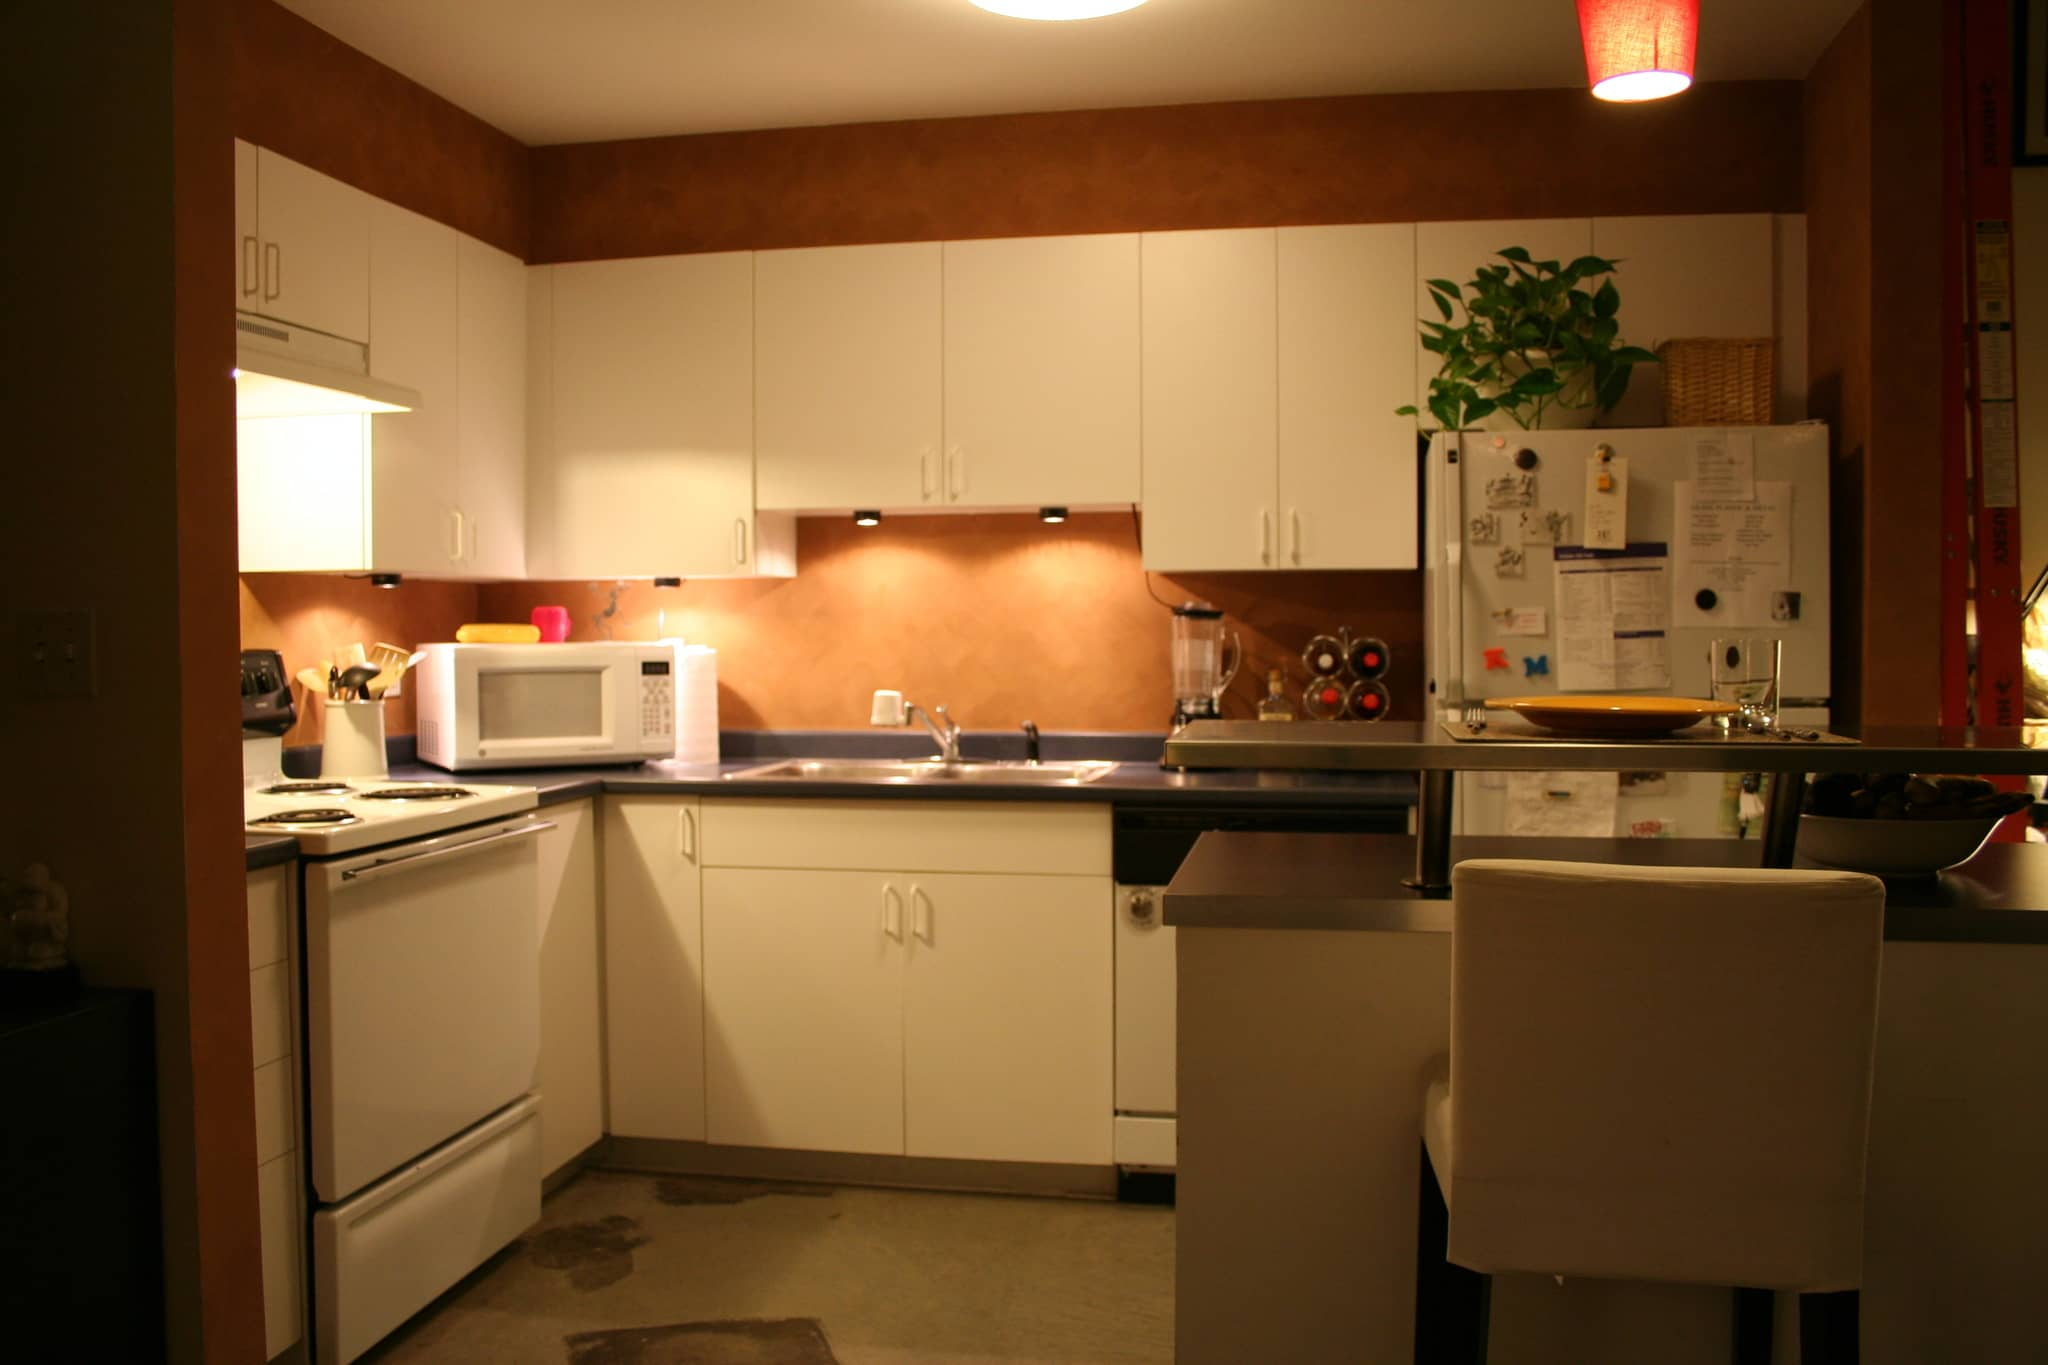 Kate's Creatively Renovated Rental Kitchen: gallery image 2